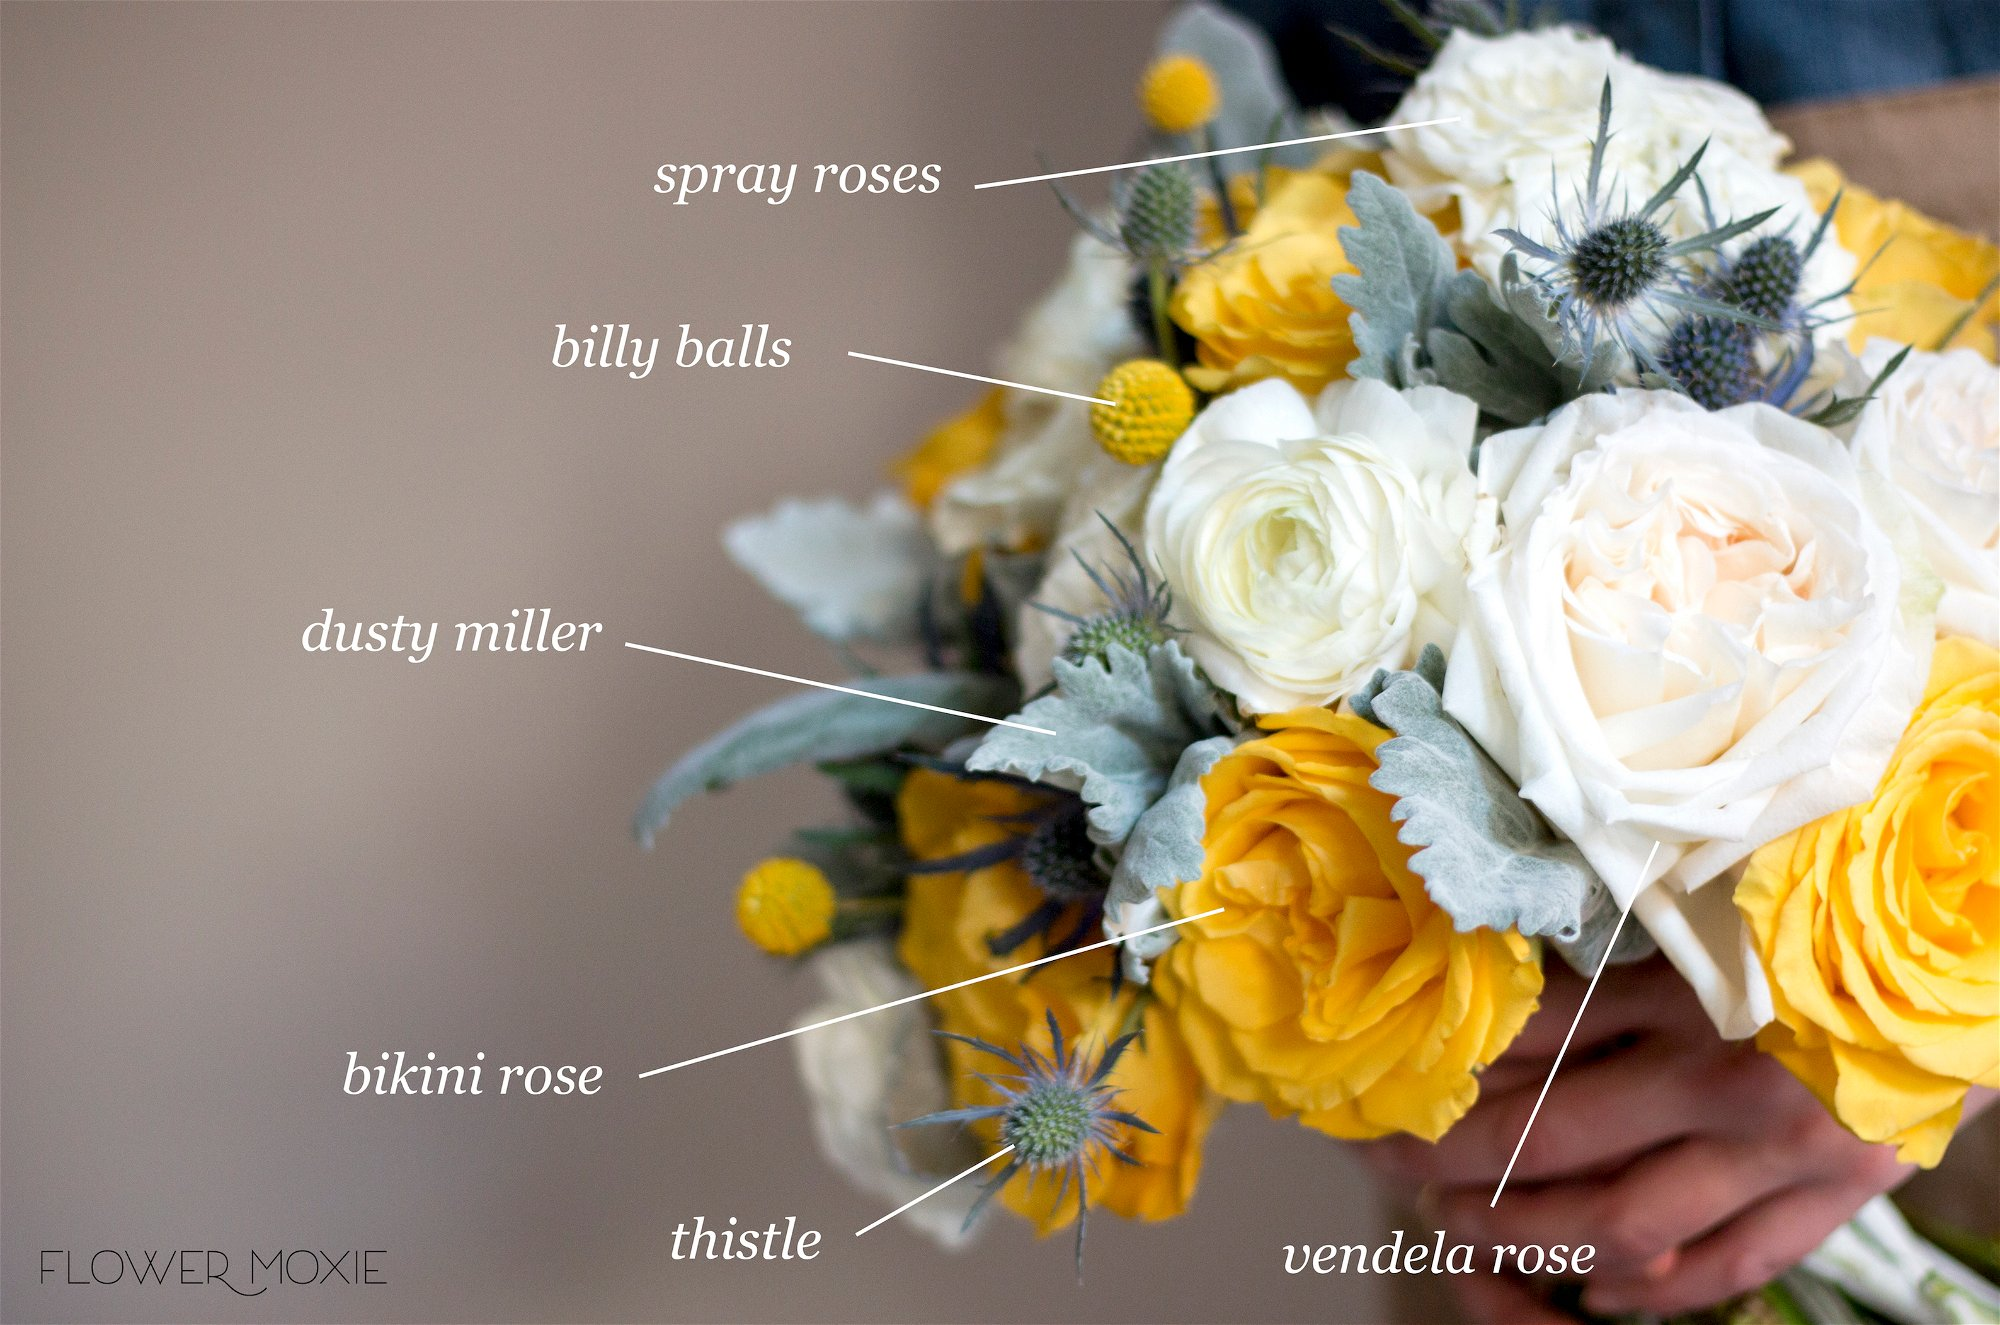 Yellow wedding color palette, gold and yellow roses, billy balls, Yellow Bridal Bouquet, Bikini yellow roses, thistle bouquet, brunia, dusty miller, Flower Moxie, DIY Wedding bouquet